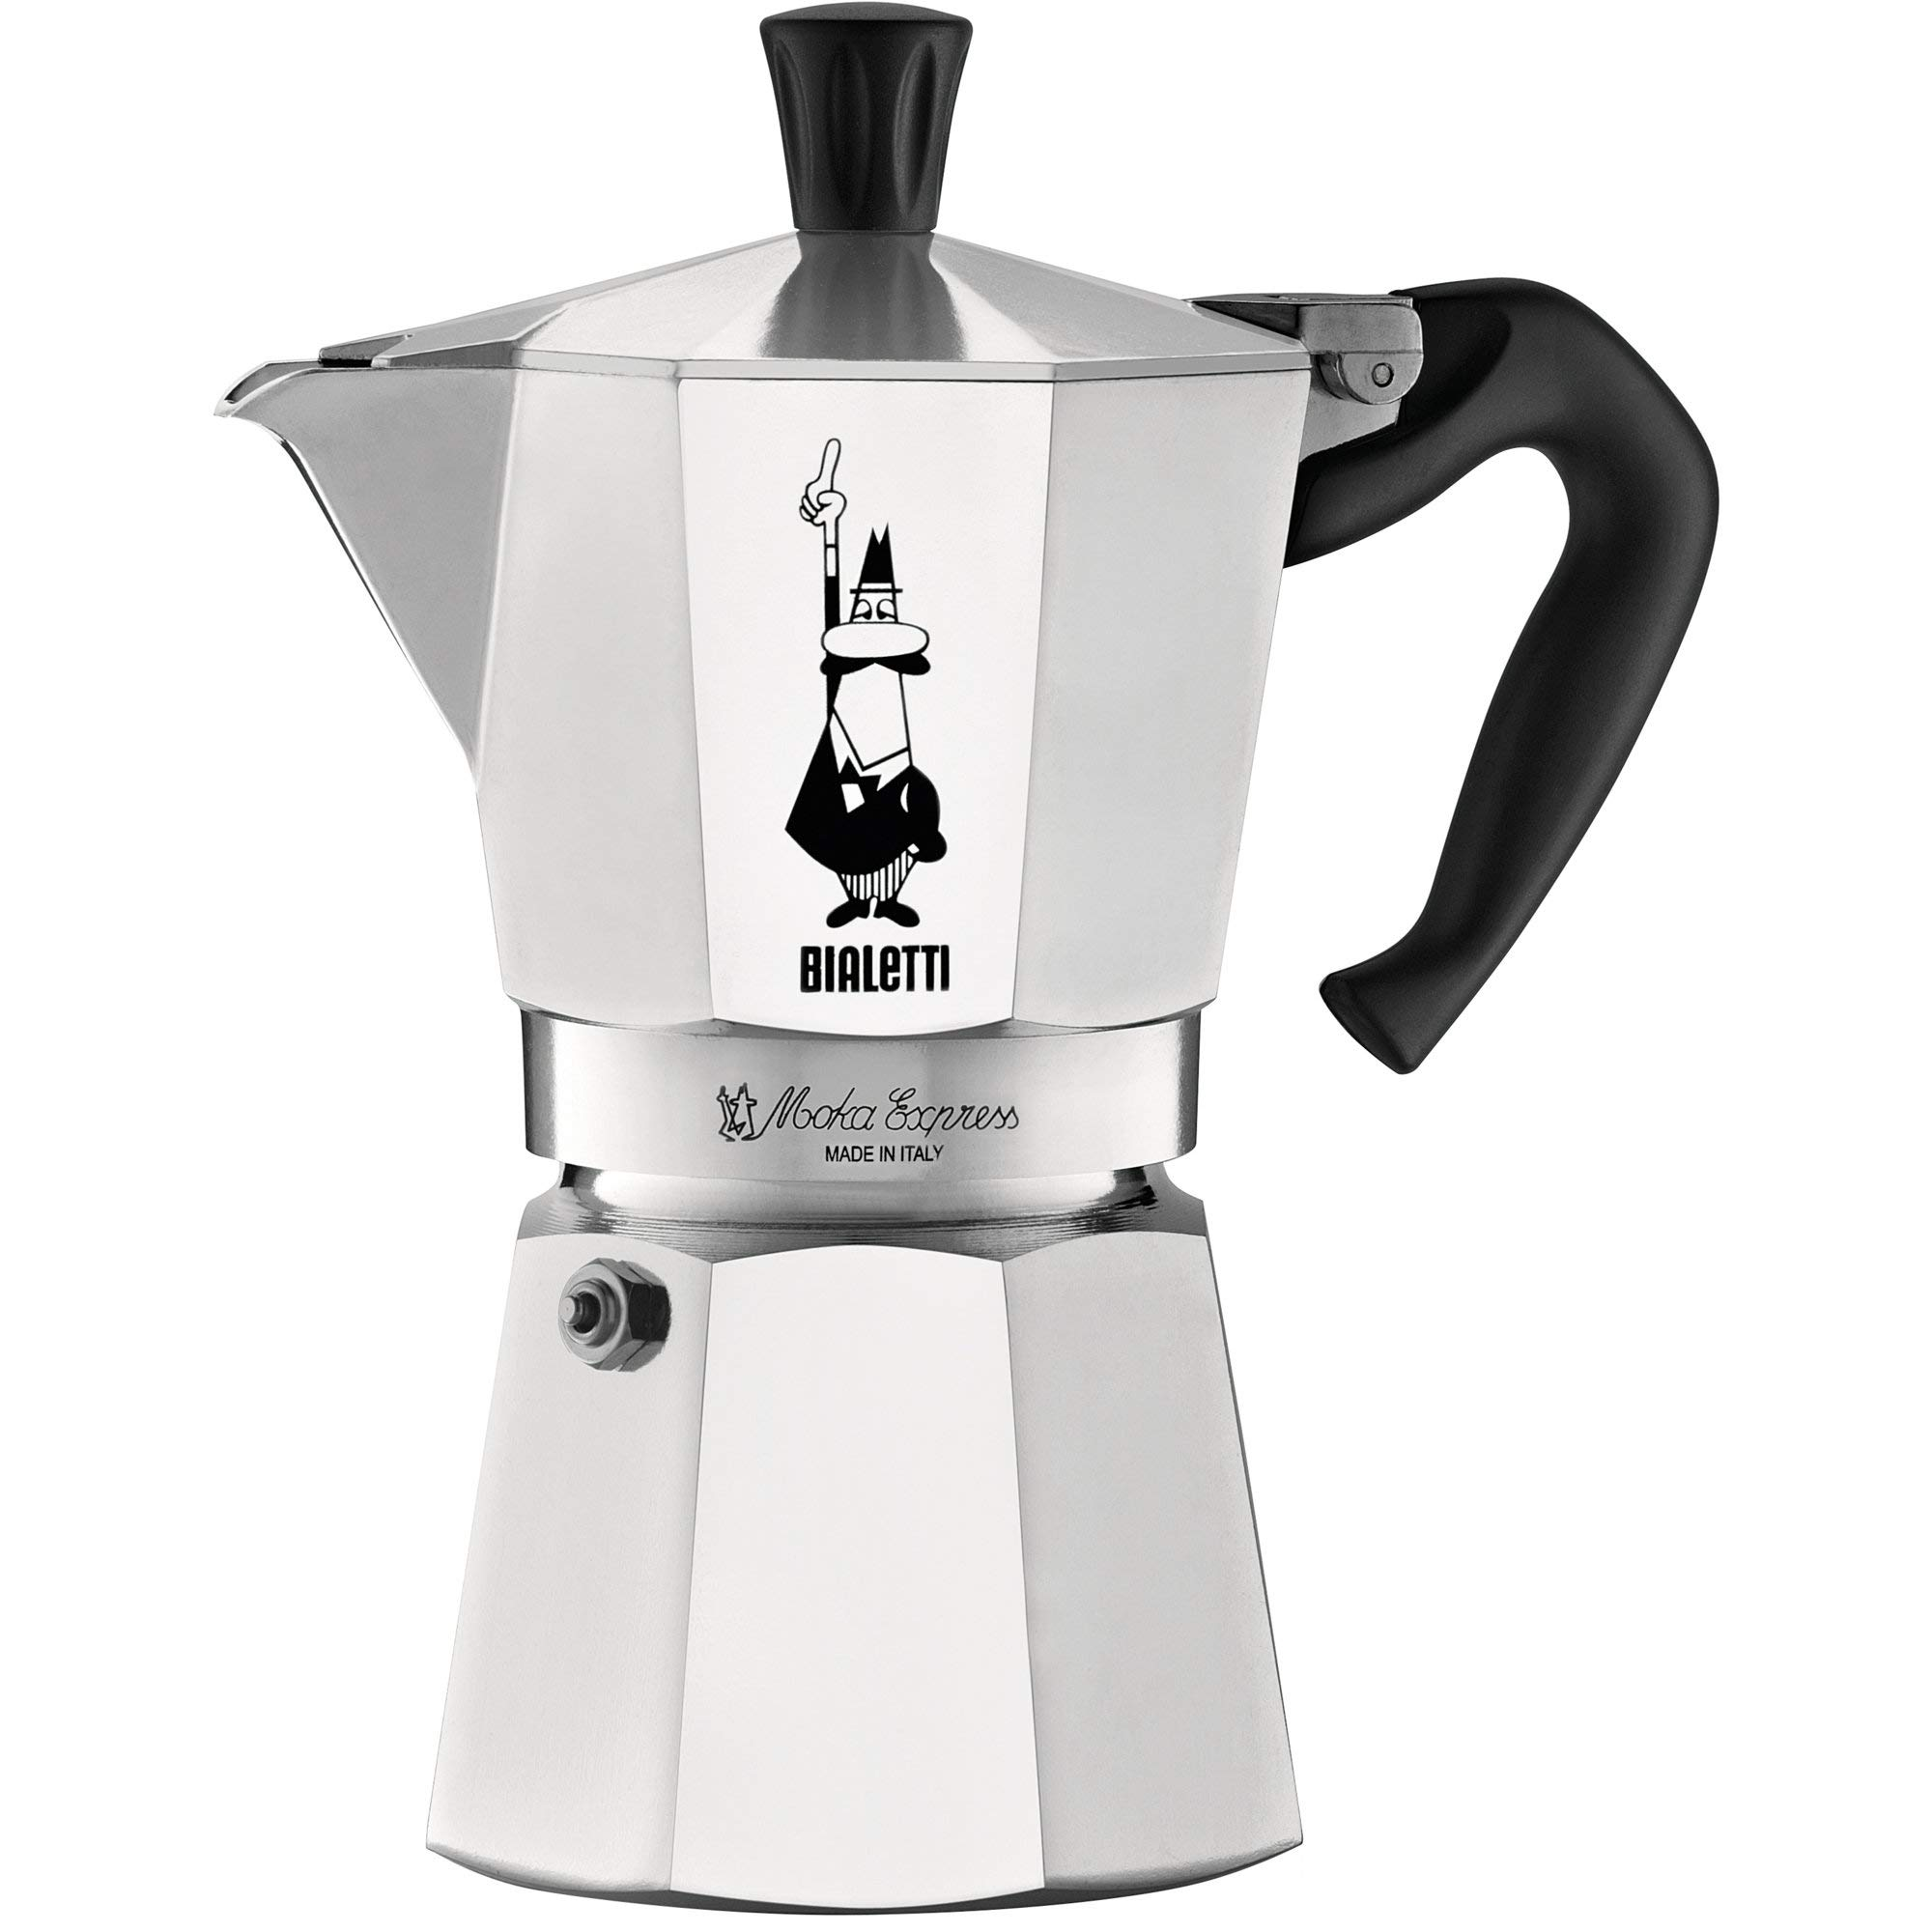 The Original Bialetti Moka Express - 6 Cup Stovetop Coffee Maker with Safety Valve - brews 9.2 ounces (Renewed) by Bialetti